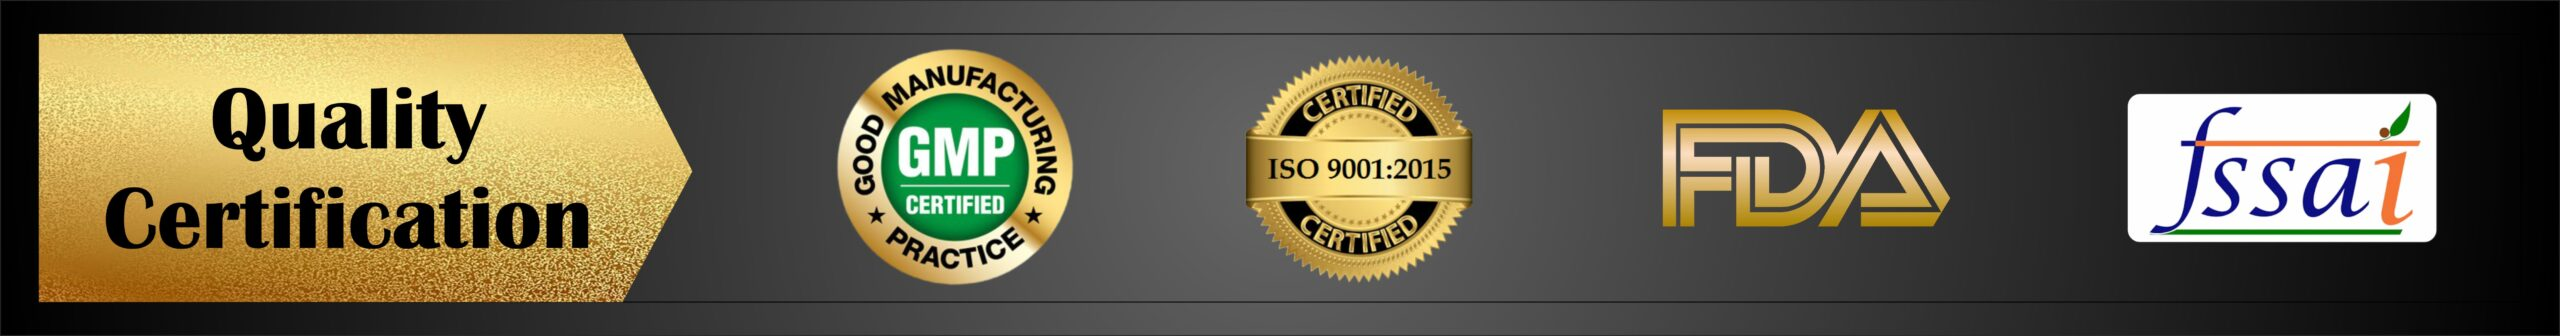 Certification of Seeds Berry